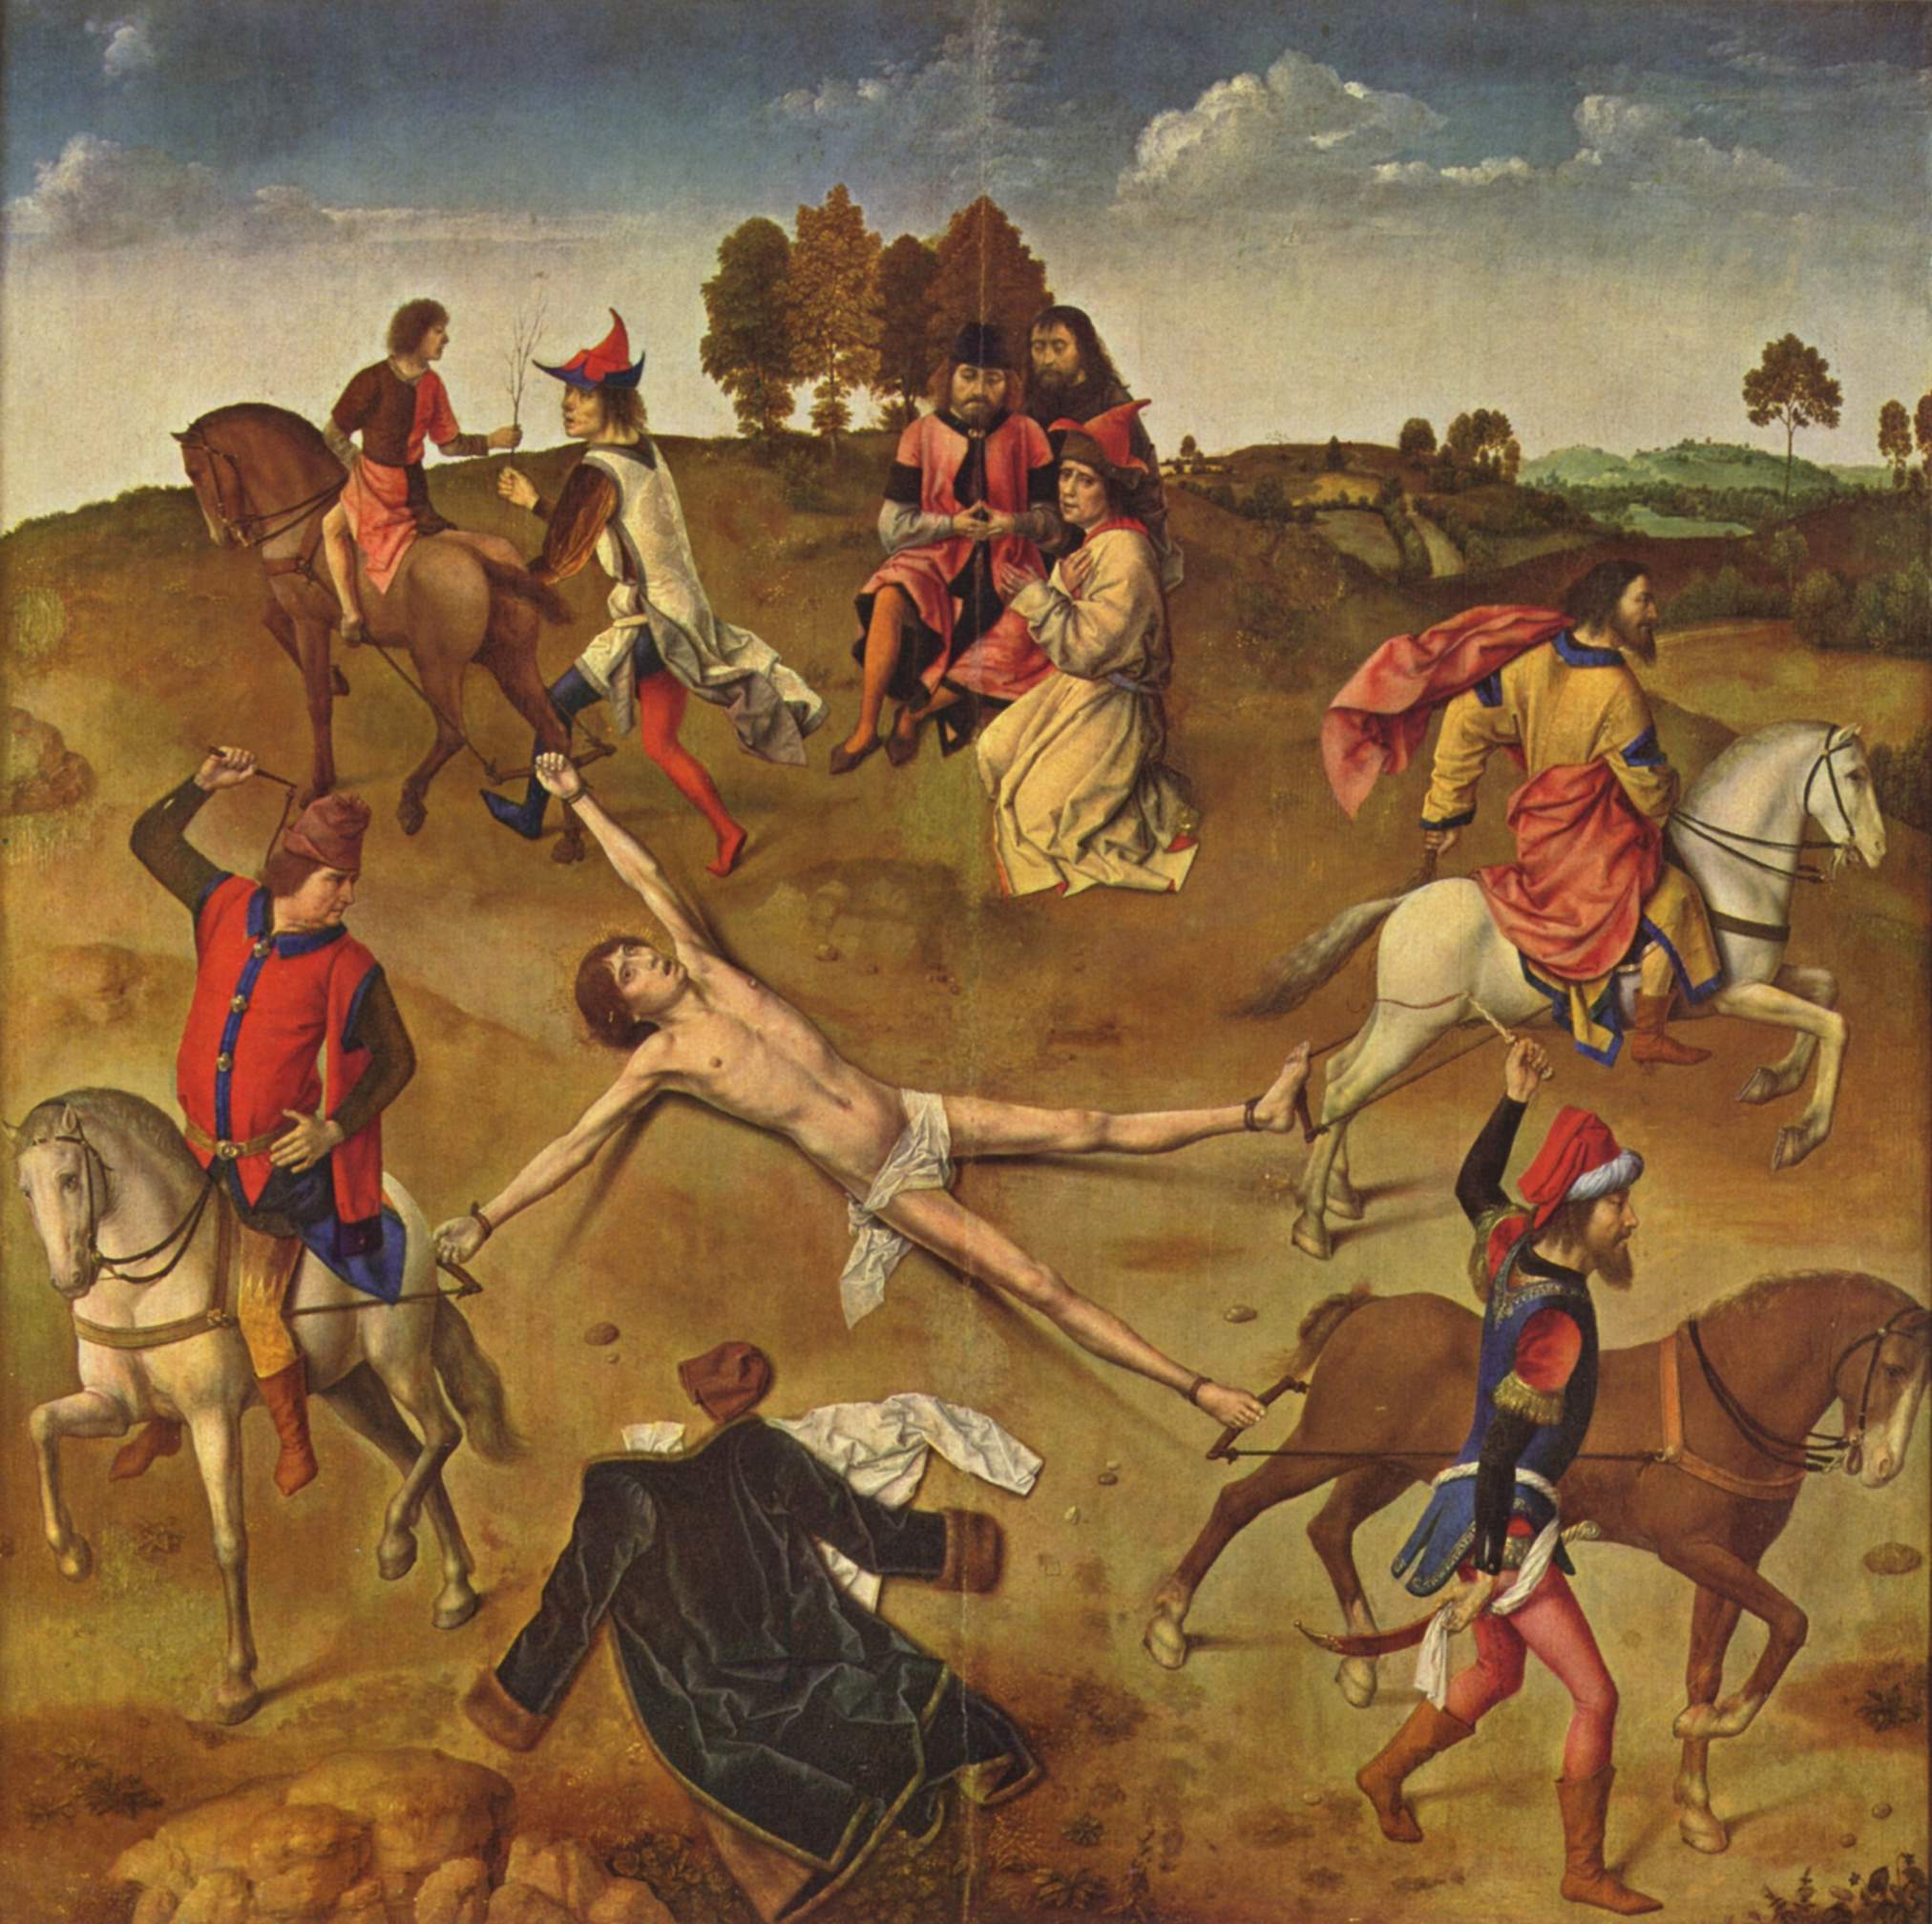 http://upload.wikimedia.org/wikipedia/commons/2/28/Dieric_Bouts_013.jpg